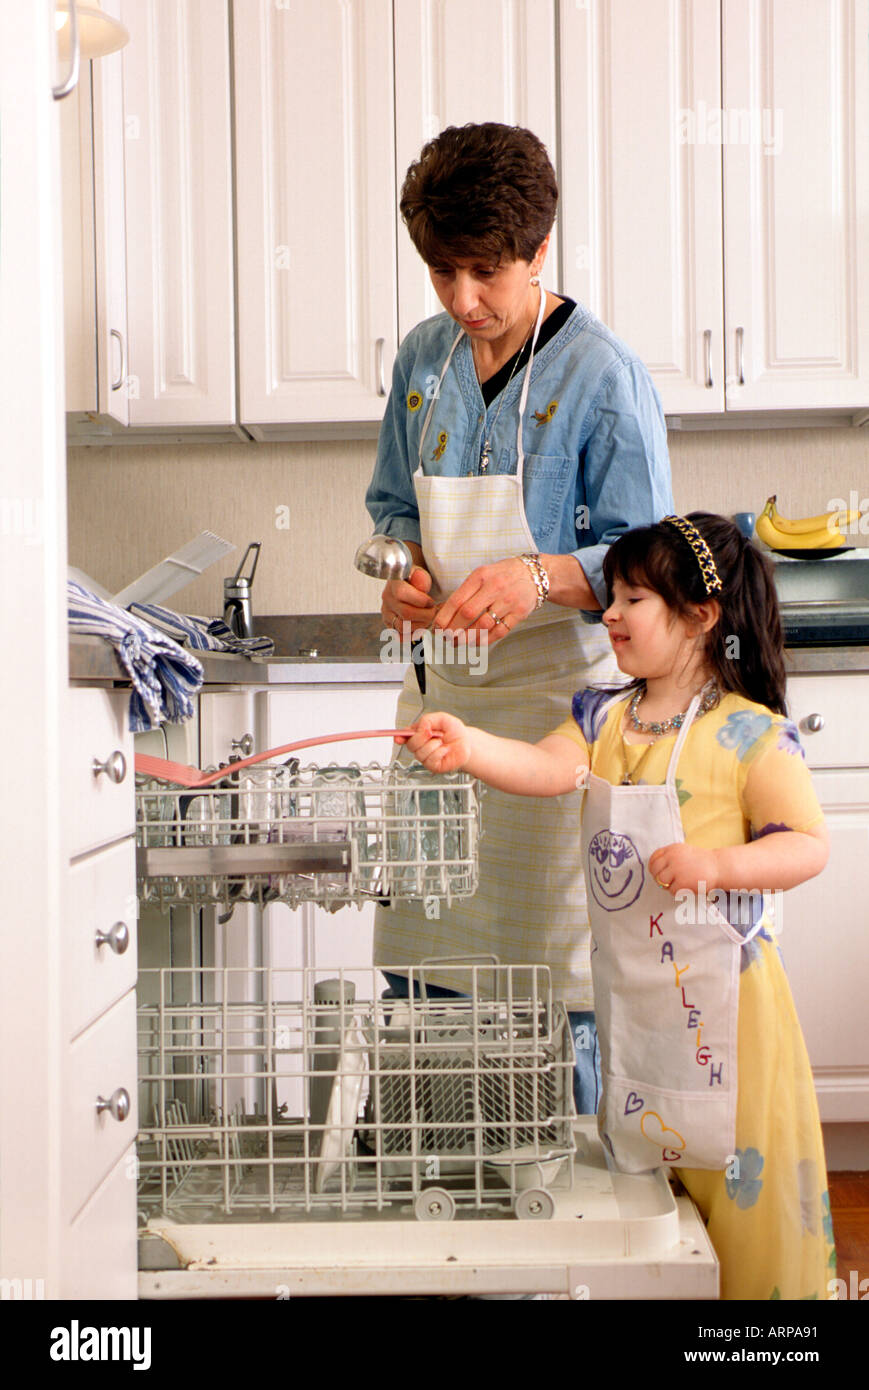 Nanny and 4 1 2 year old put away dishes after baking cookies - Stock Image